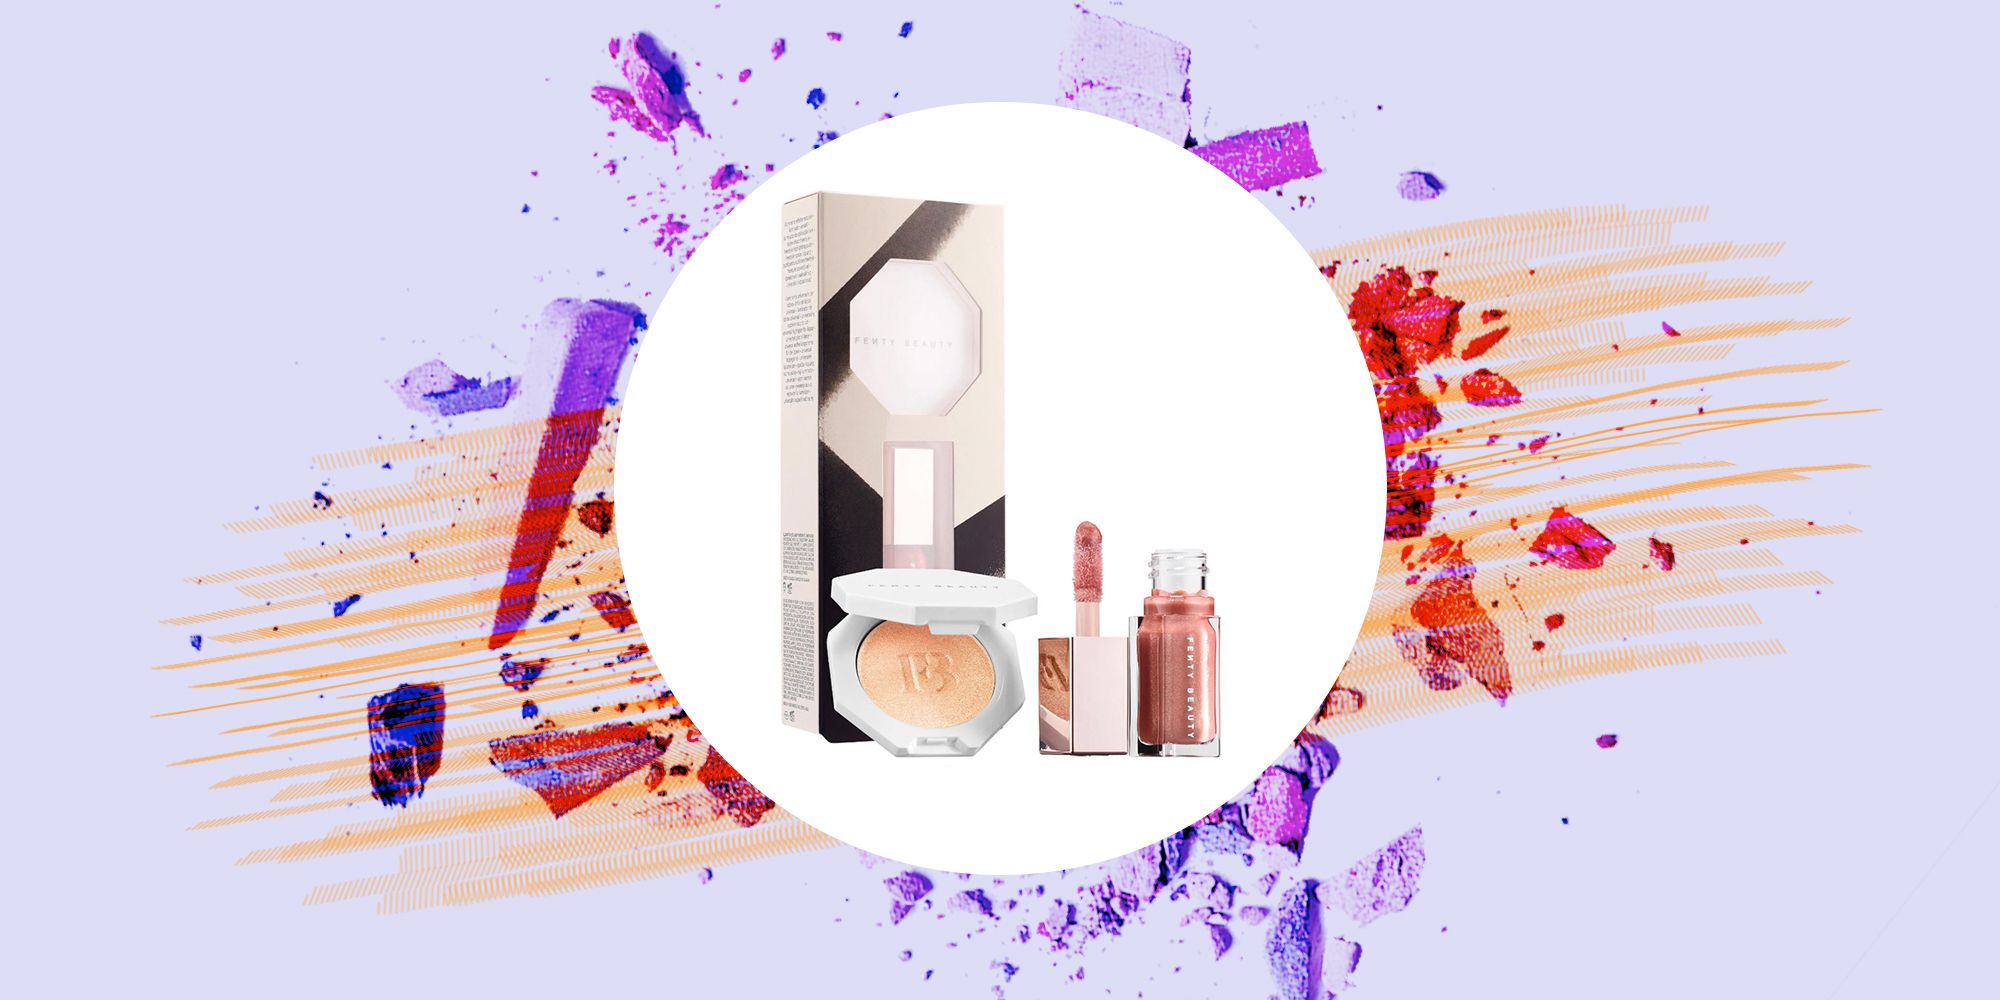 f3c0f53b3be 10 Makeup Gifts Sets For Her - Beauty Gift Sets for Women